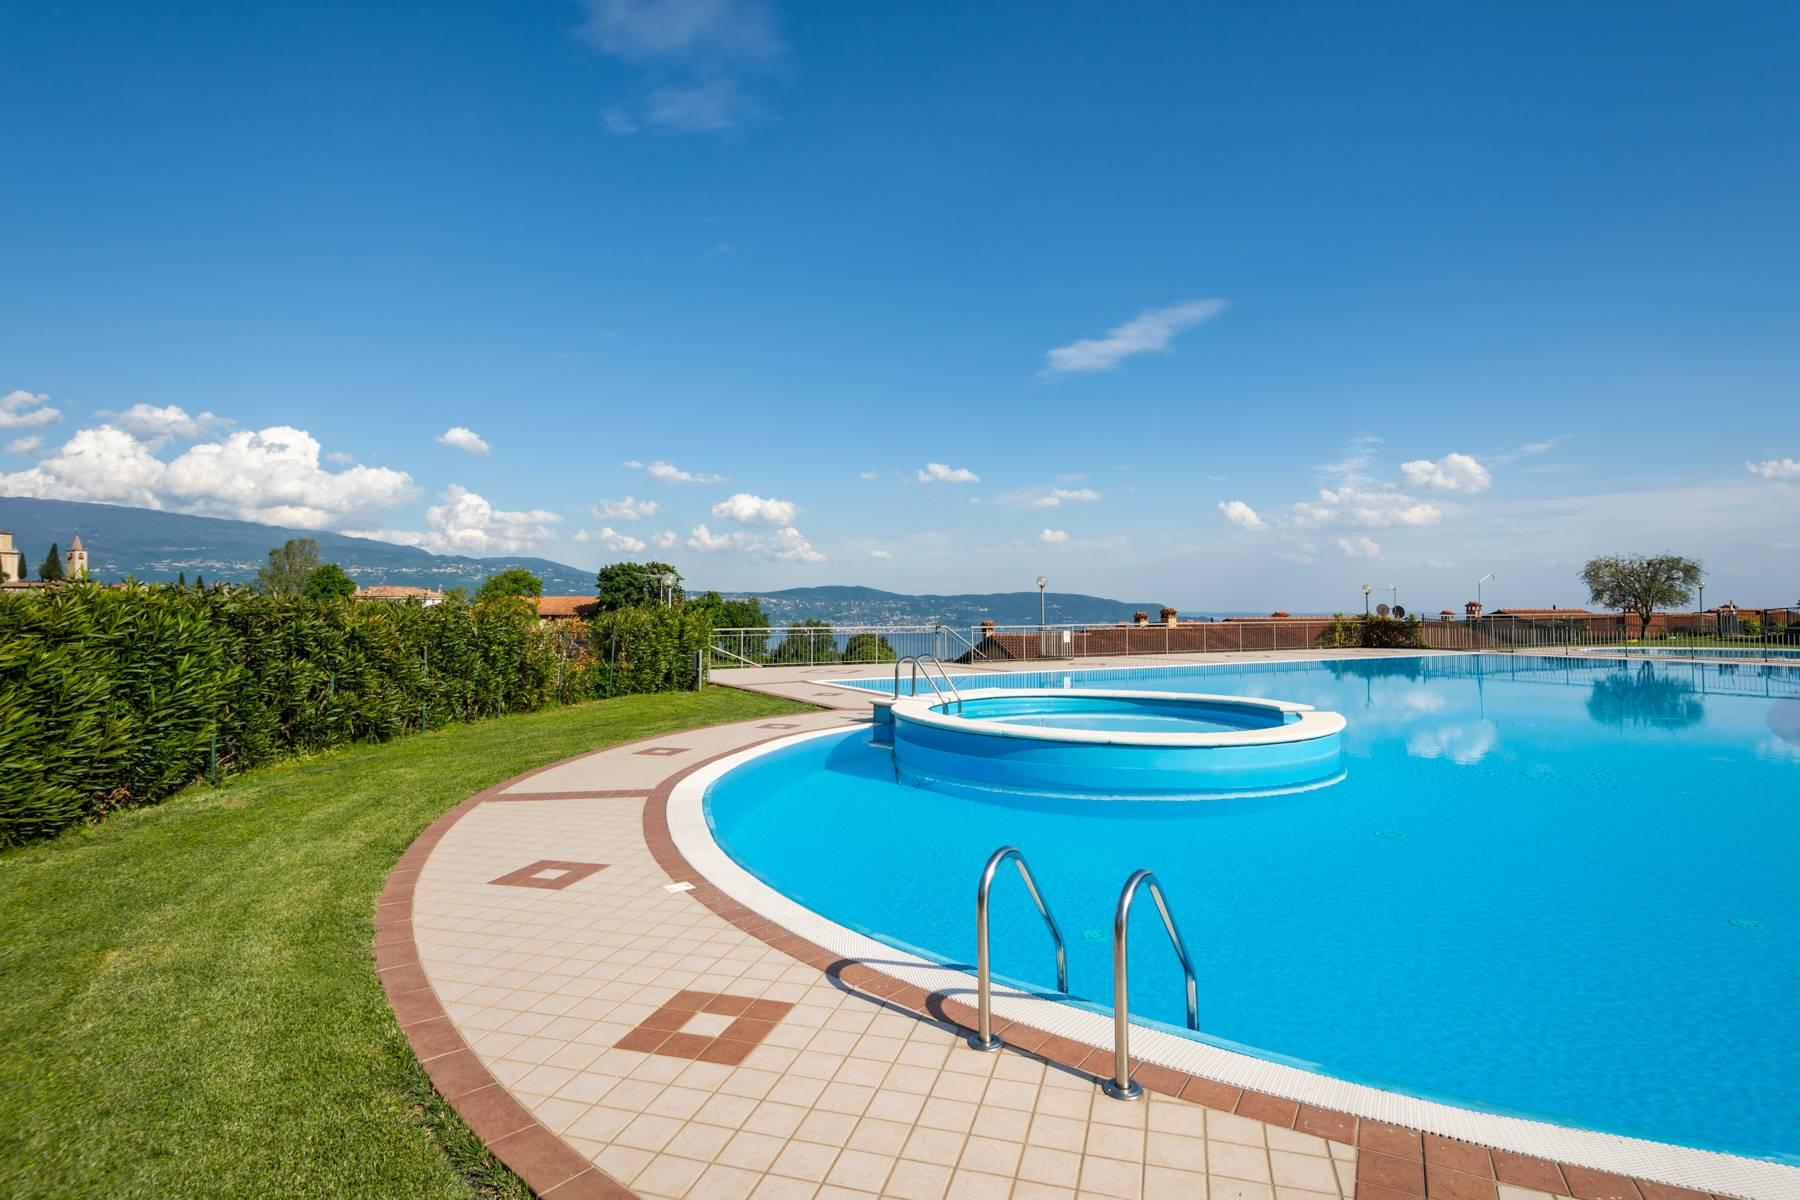 Independent villa with spectacular view - 20